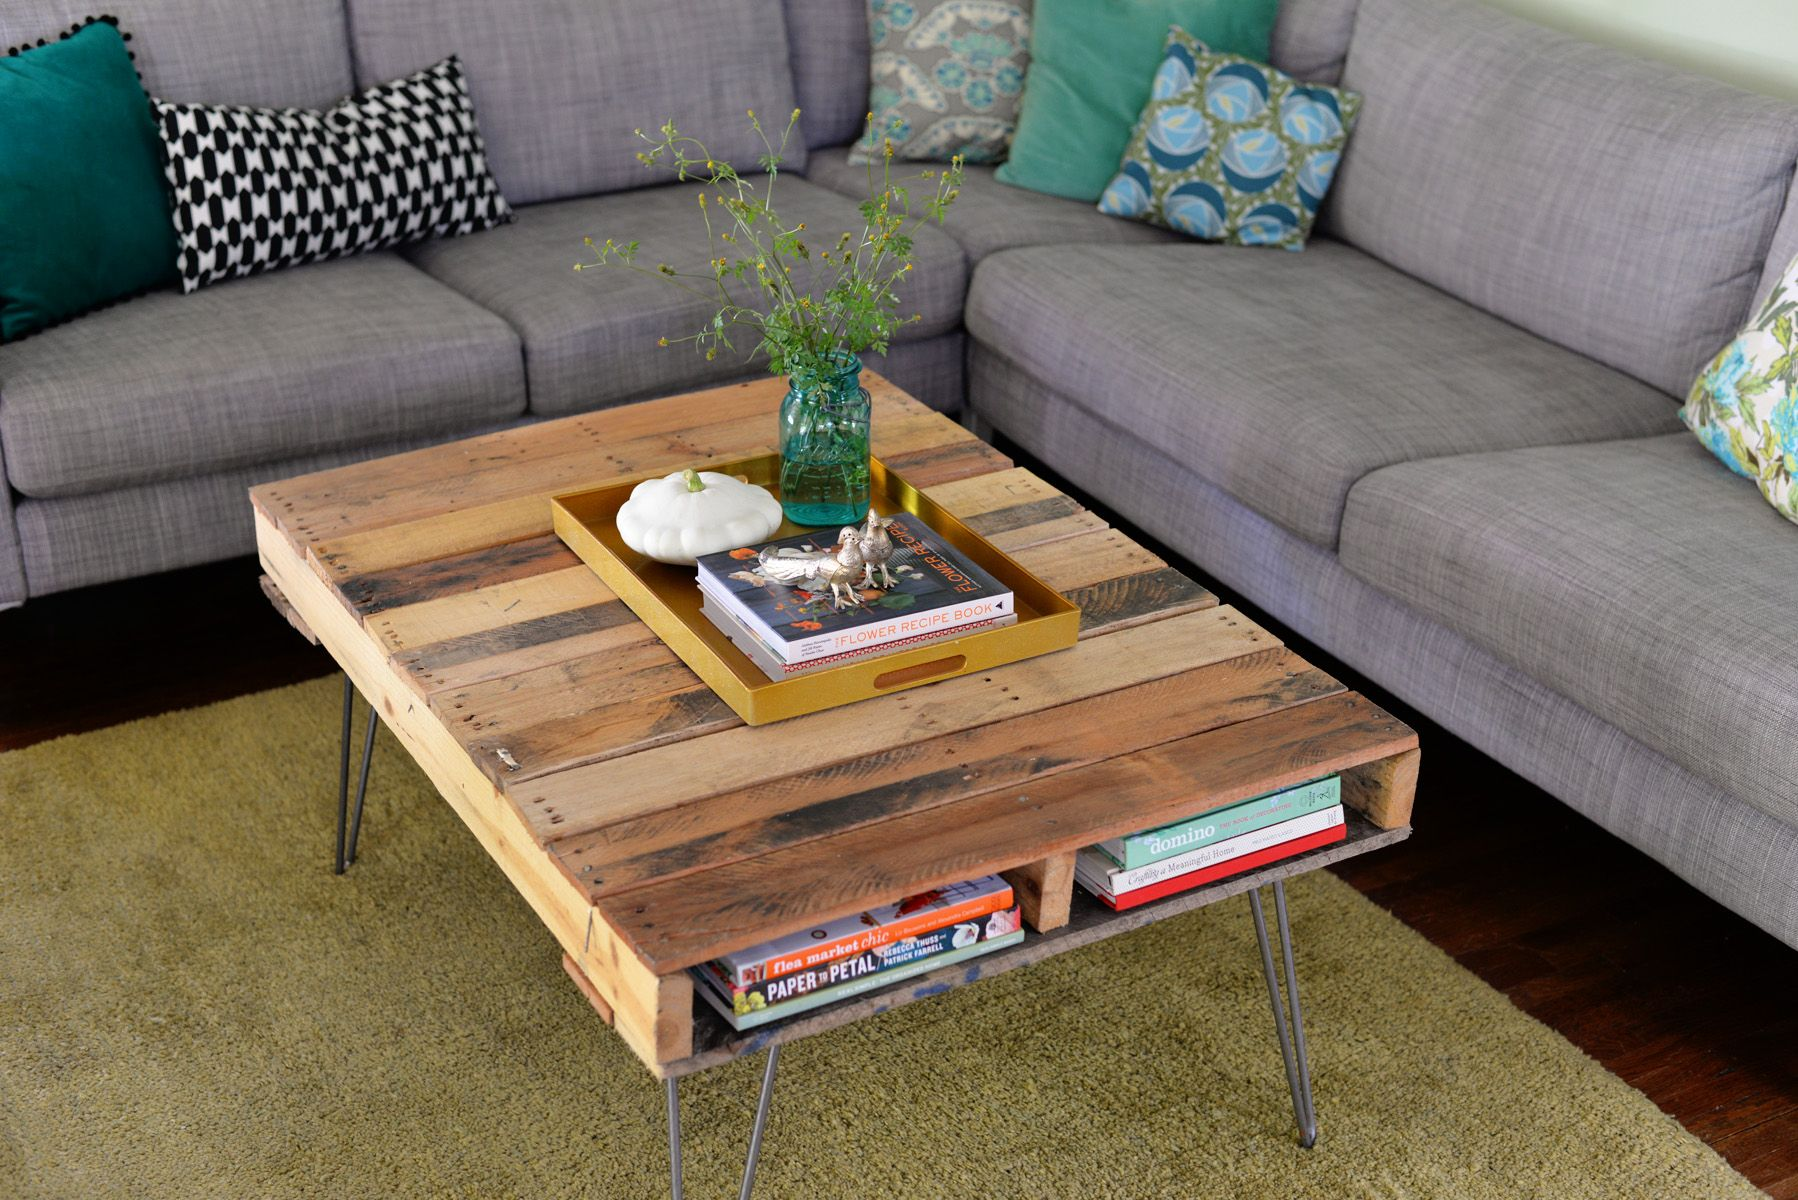 Diy Pallet Coffee Table With Hairpin Legs Pallet Table Diy Diy Pallet Furniture Pallet Table